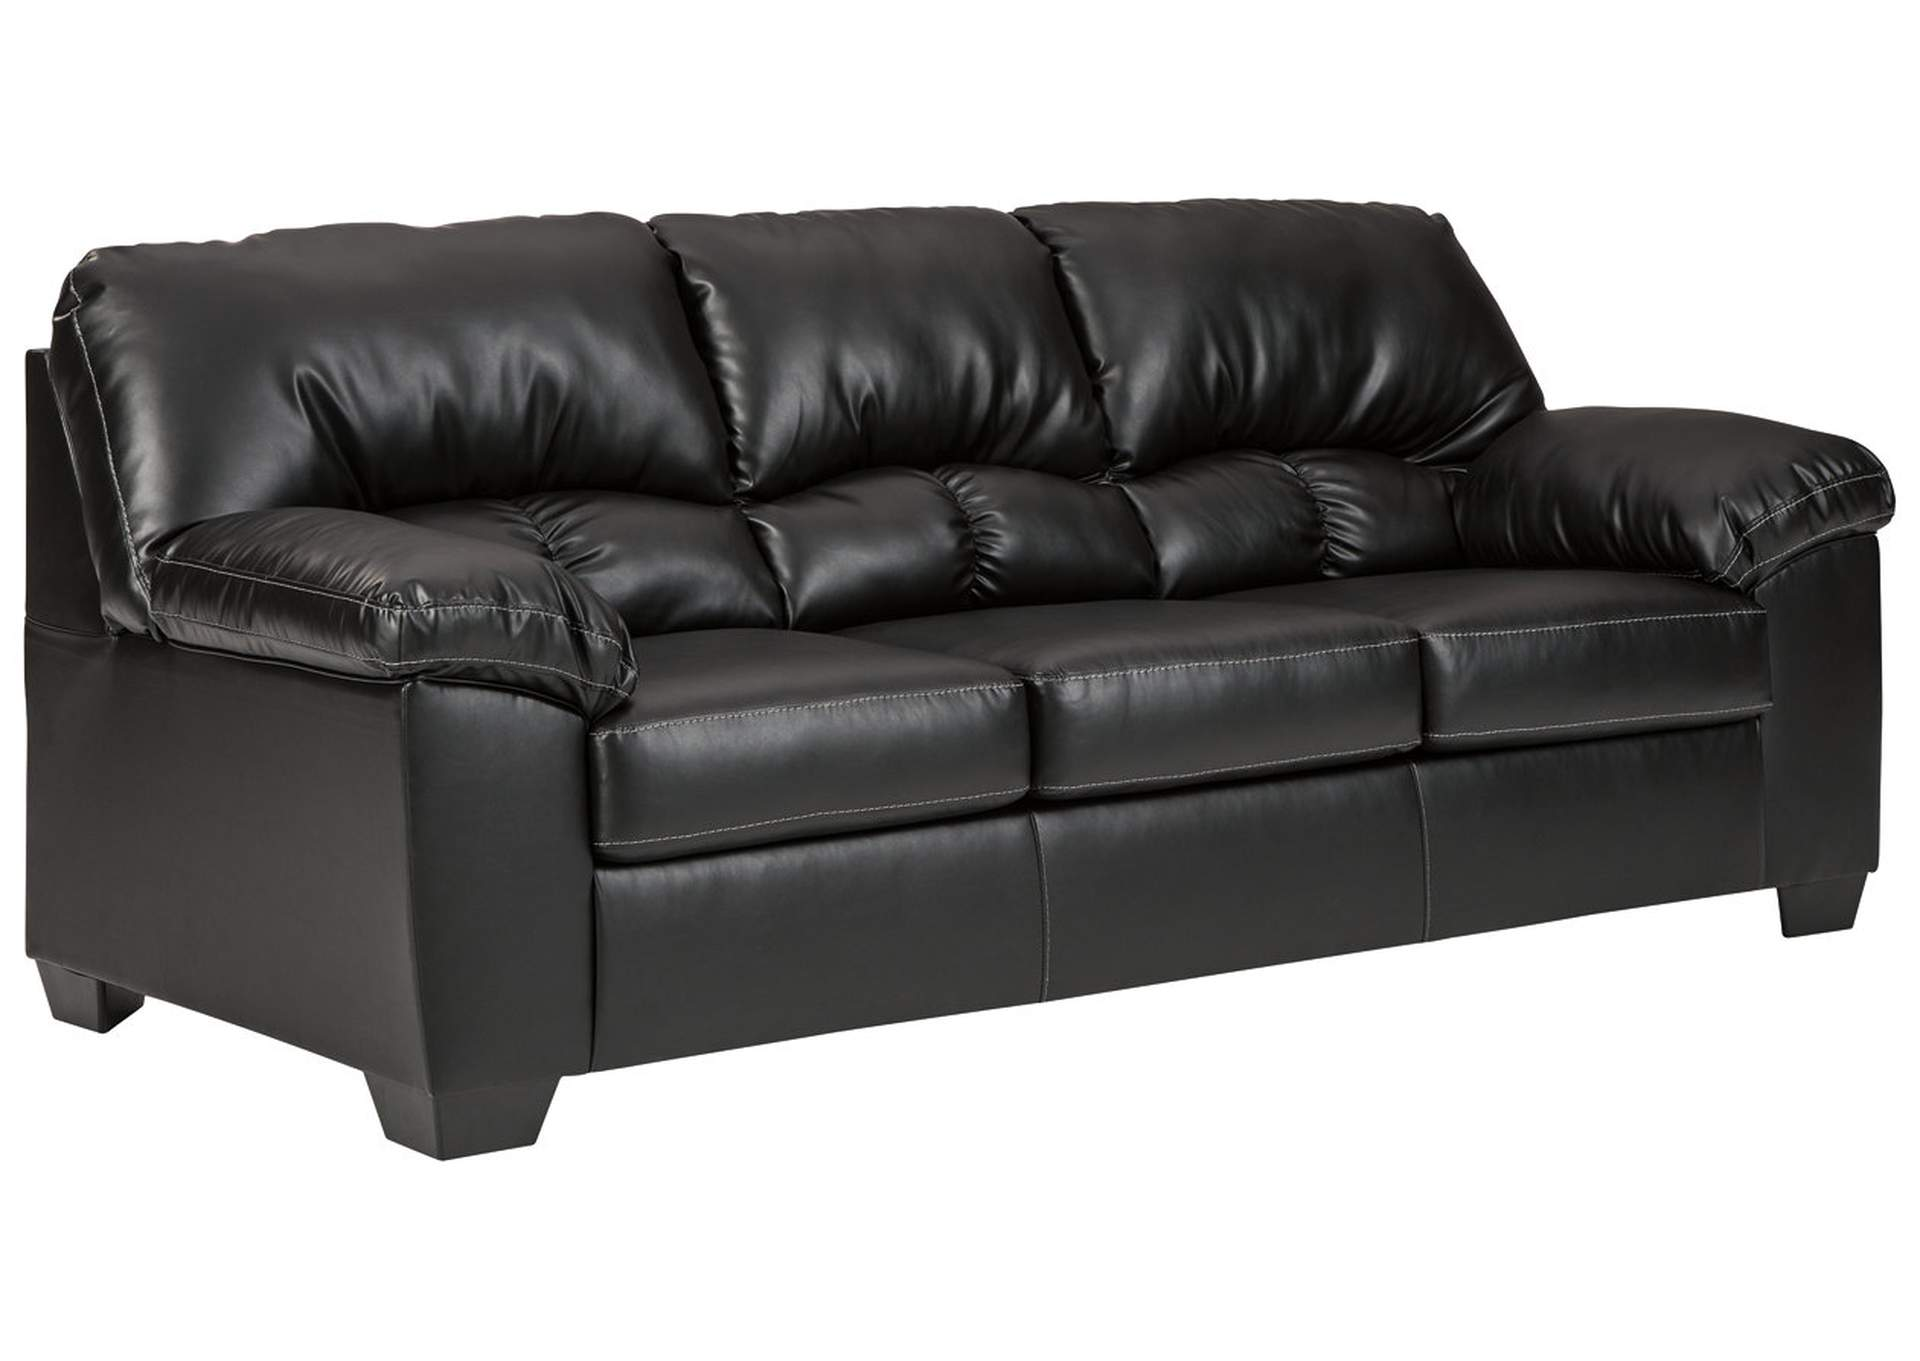 Picture of: Brazoria Sofa Ashley Furniture Homestore Independently Owned And Operated By Best Furn Appliances I